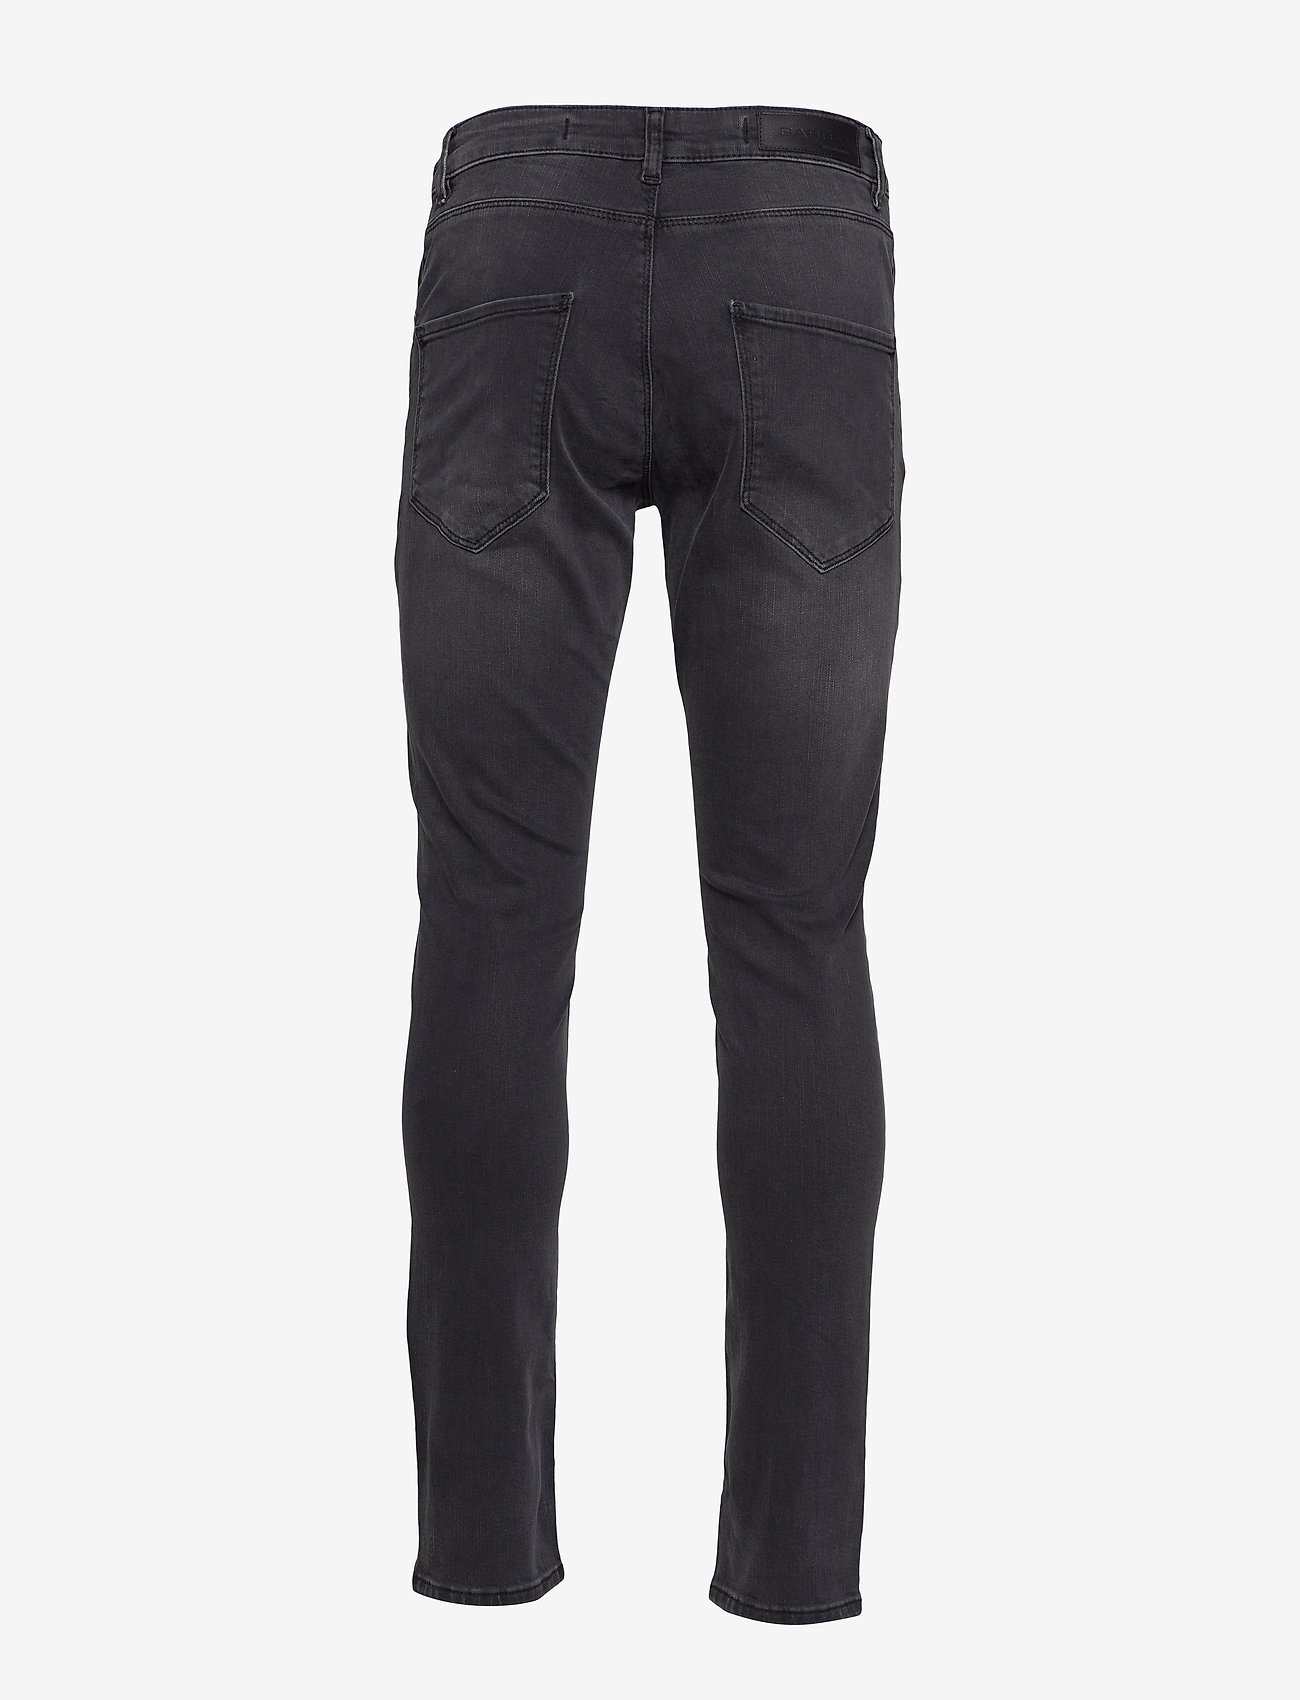 Gabba - Rey Thor Jeans - slim jeans - rs0491 - 1